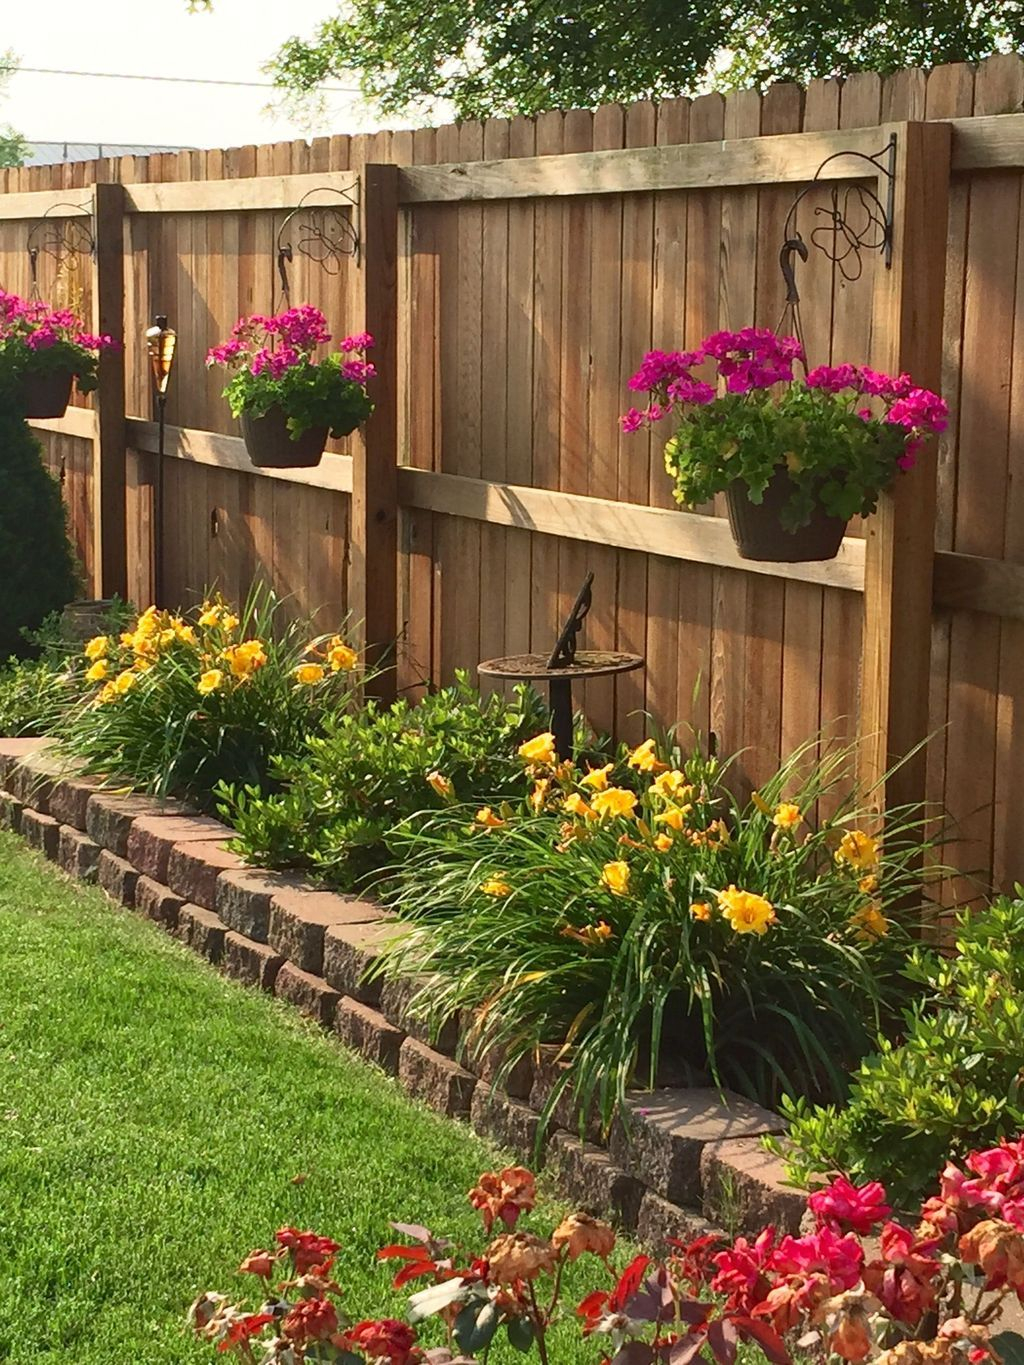 44 Awesome Backyard Landscaping Ideas Budget Garden Outdoor with regard to 15 Awesome Initiatives of How to Craft Awesome Backyard Ideas